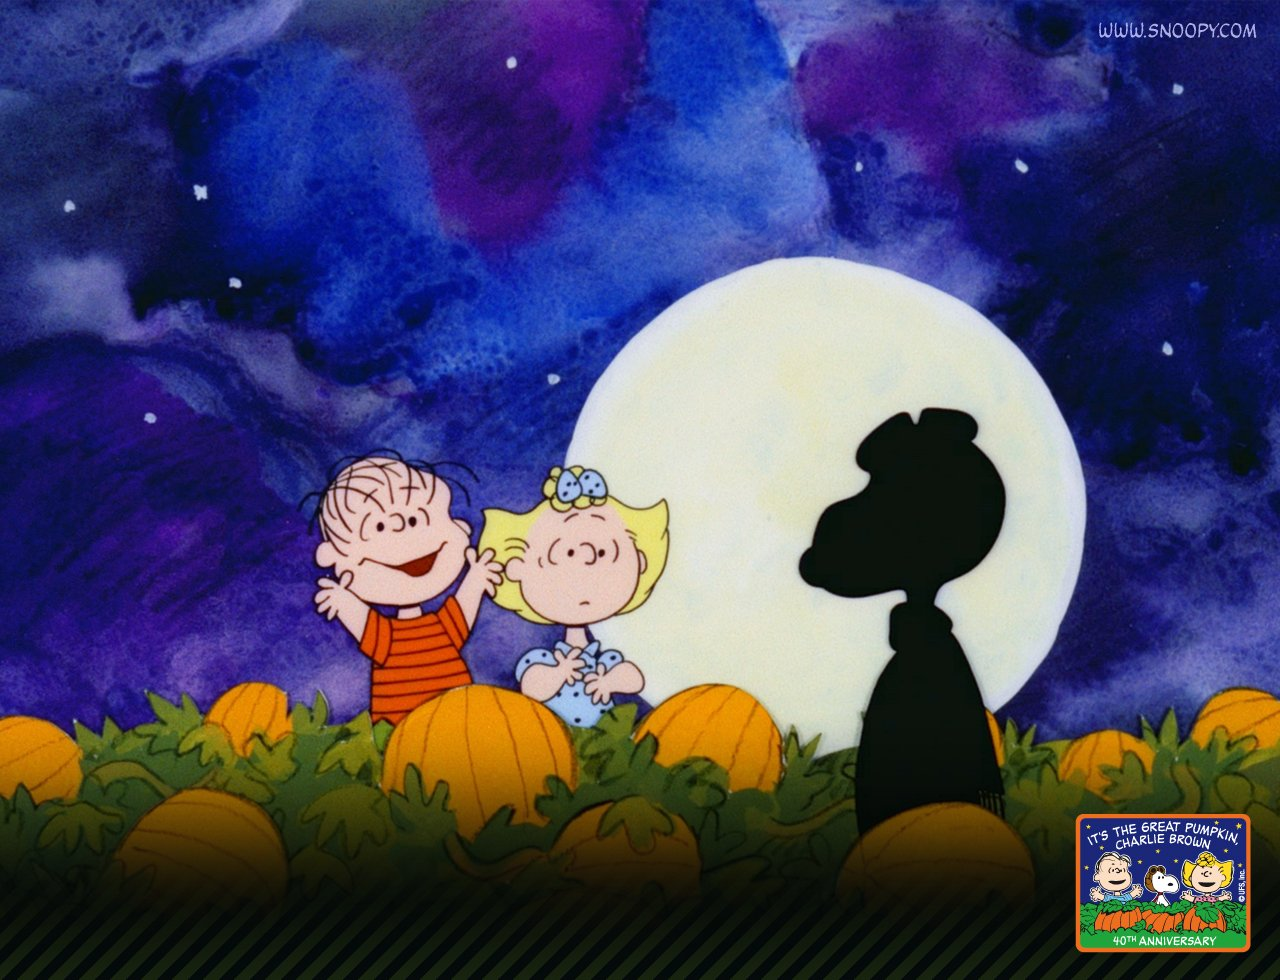 Free peanuts screensavers and wallpaper wallpapersafari - Free snoopy images ...